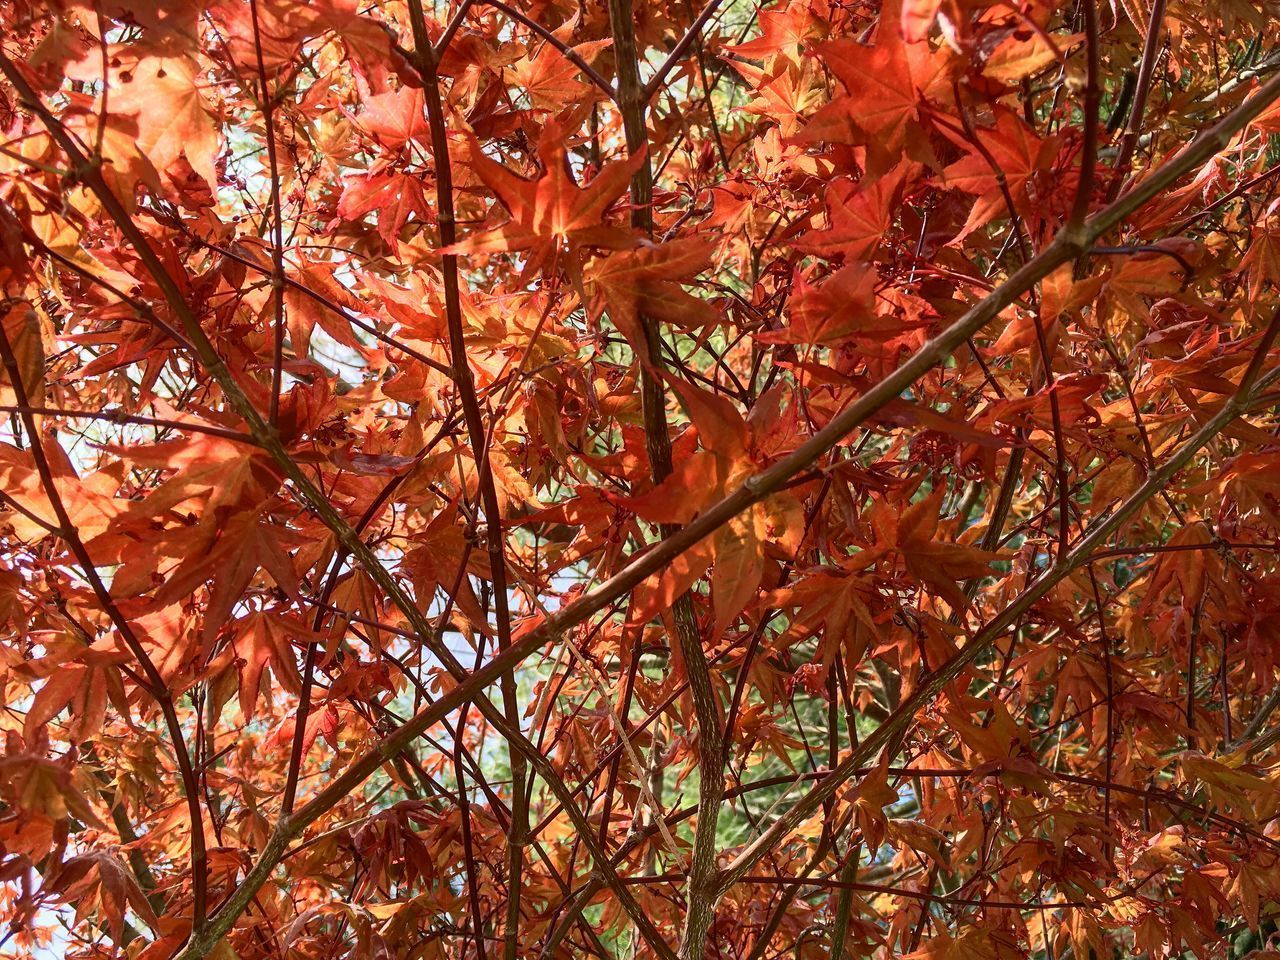 autumn, tree, change, plant, orange color, beauty in nature, full frame, branch, plant part, backgrounds, growth, no people, leaf, nature, day, low angle view, tranquility, outdoors, maple tree, red, maple leaf, natural condition, fall, leaves, tree canopy